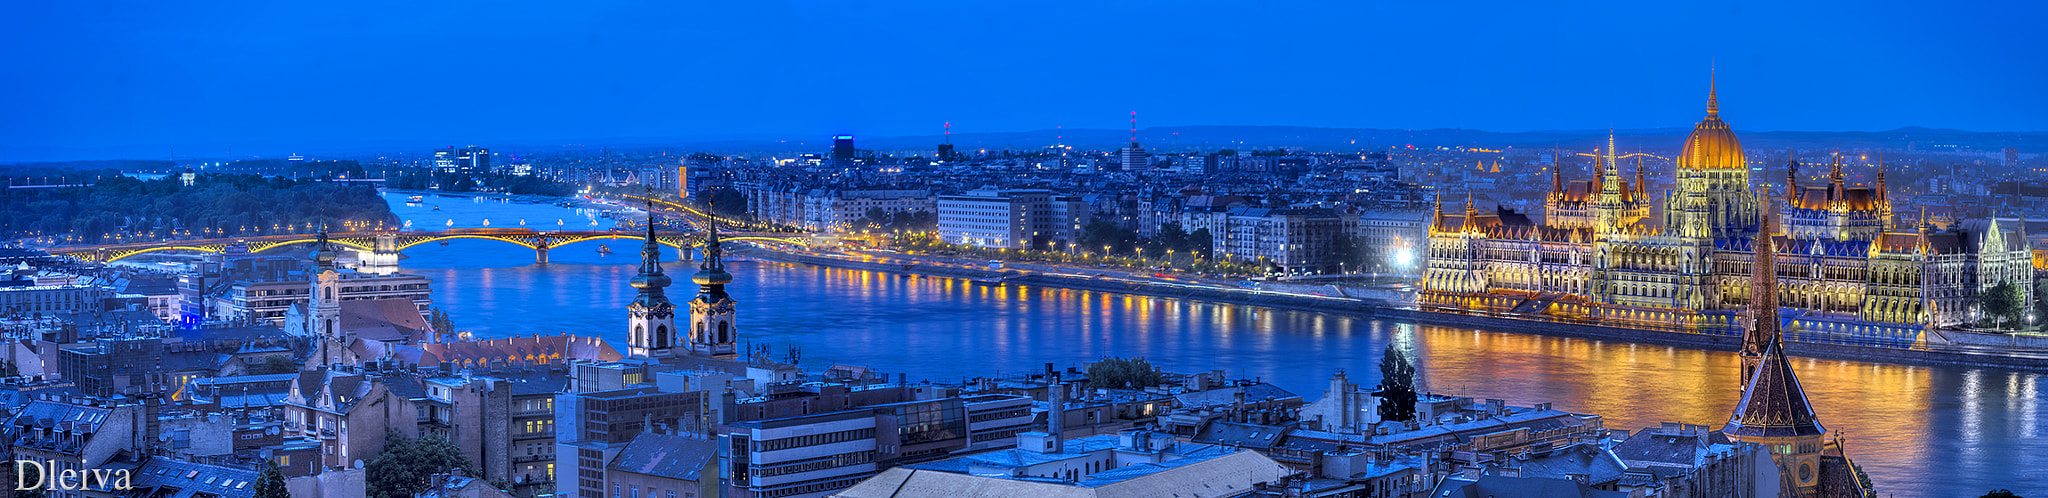 Photograph Pest from Buda Hill (Budapest) by Domingo Leiva on 500px